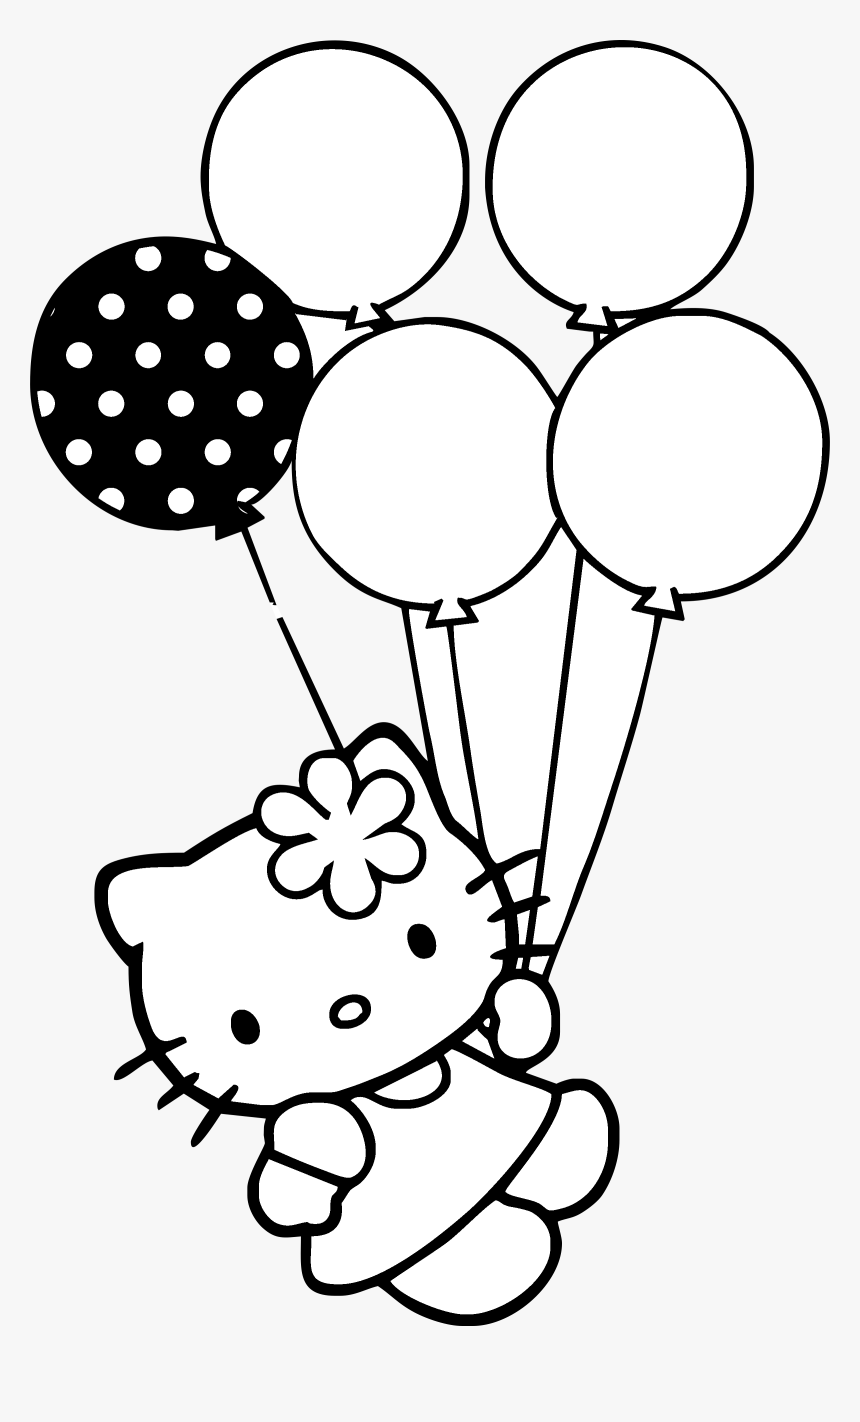 thumb image black and white hello kitty hd png download transparent png image pngitem black and white hello kitty hd png